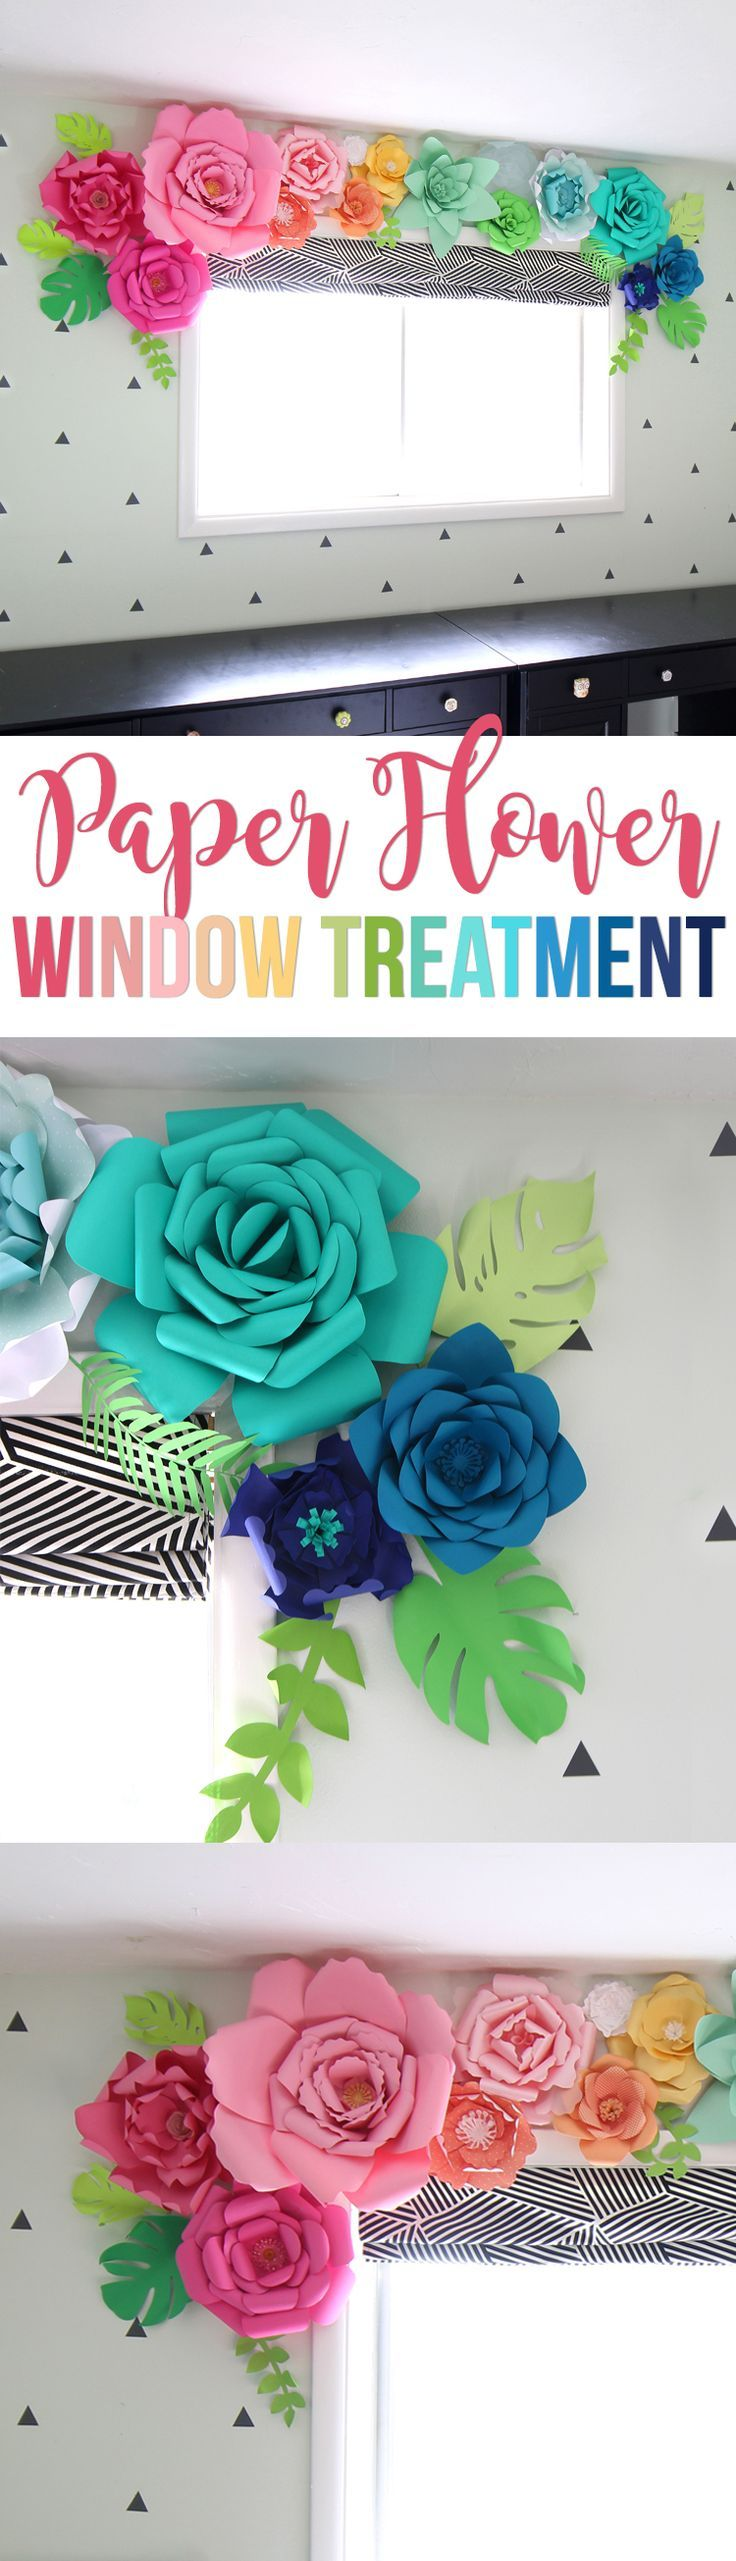 How to make paper flowers -- step by step instructions and video tutorial!Create a whimsical, colorful and unique window treatment using giant paper flowers. So cute for a little girls room or as nursery or party decor! Free paper flower templates and Silhouette cut files.